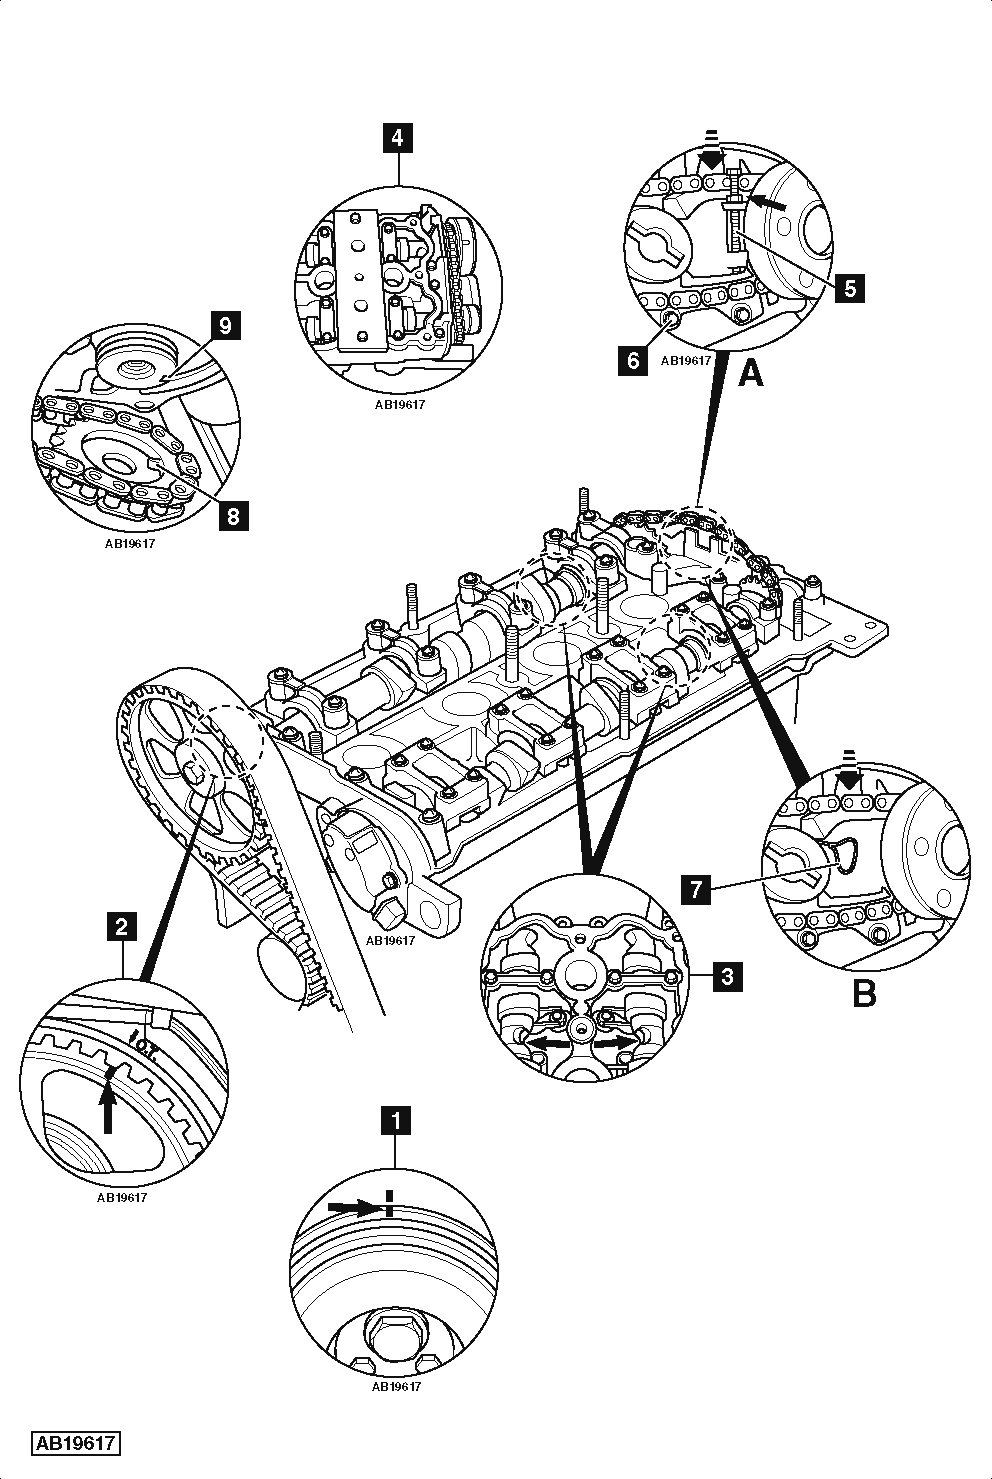 hight resolution of audi a3 2 0t engine diagram online wiring diagramaudi a4 2 0t engine diagram best wiring